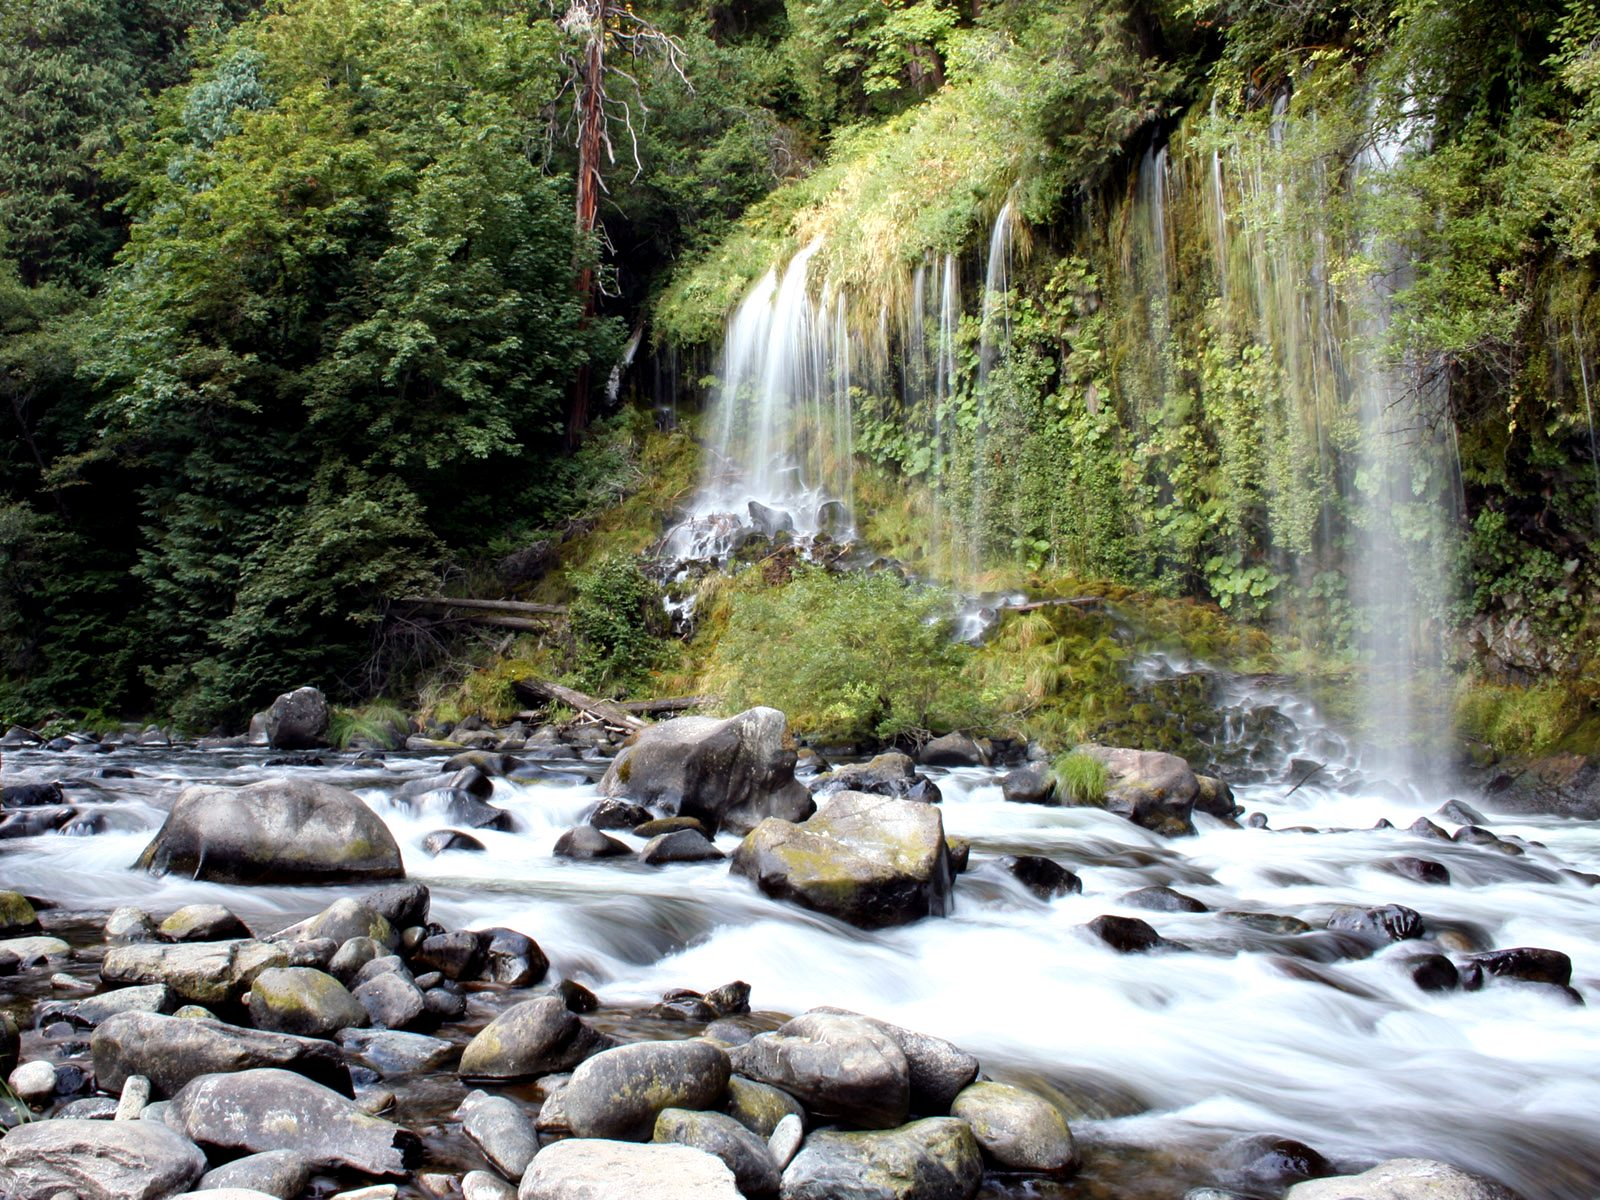 http://2.bp.blogspot.com/-vx49DWgbZ88/T2891Por4xI/AAAAAAAAAG0/UOvE9_gZoMA/s1600/2487-photography_waterfall_wallpaper.jpg